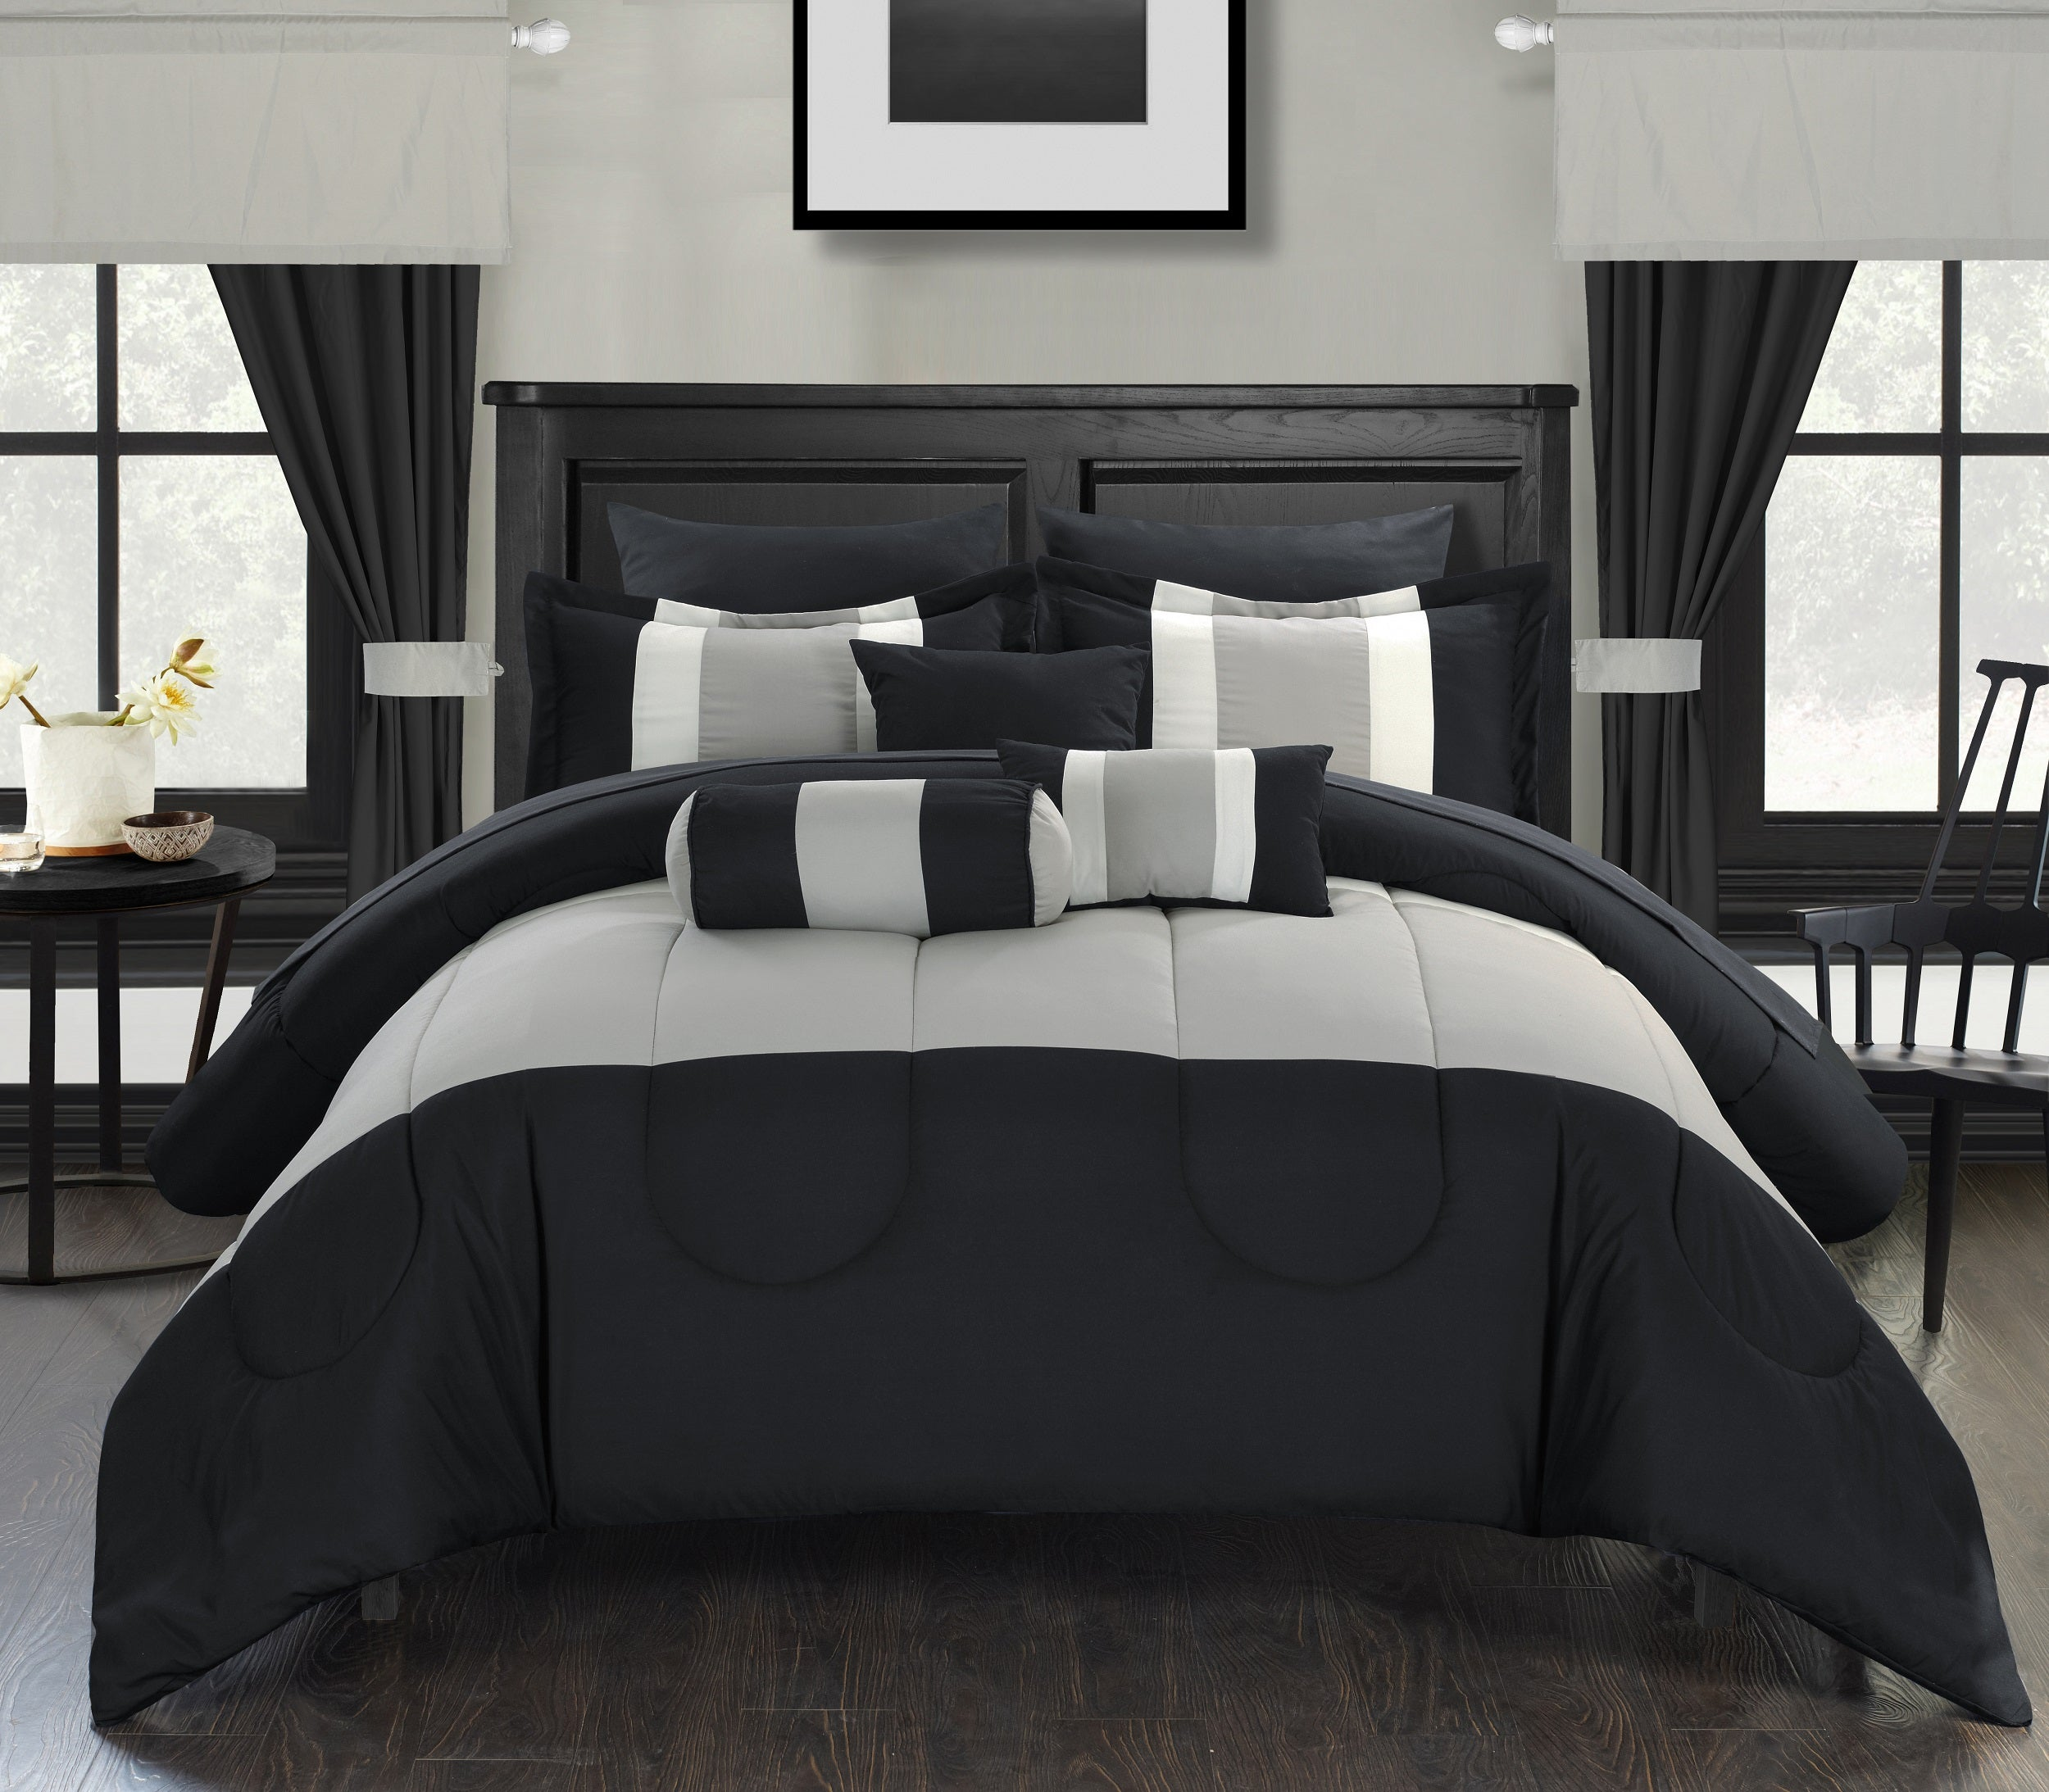 Chic Home 20-piece Whitehall Bed-in-a-Bag Black Comforter Set with Sheets and Window Treatment - Thumbnail 0